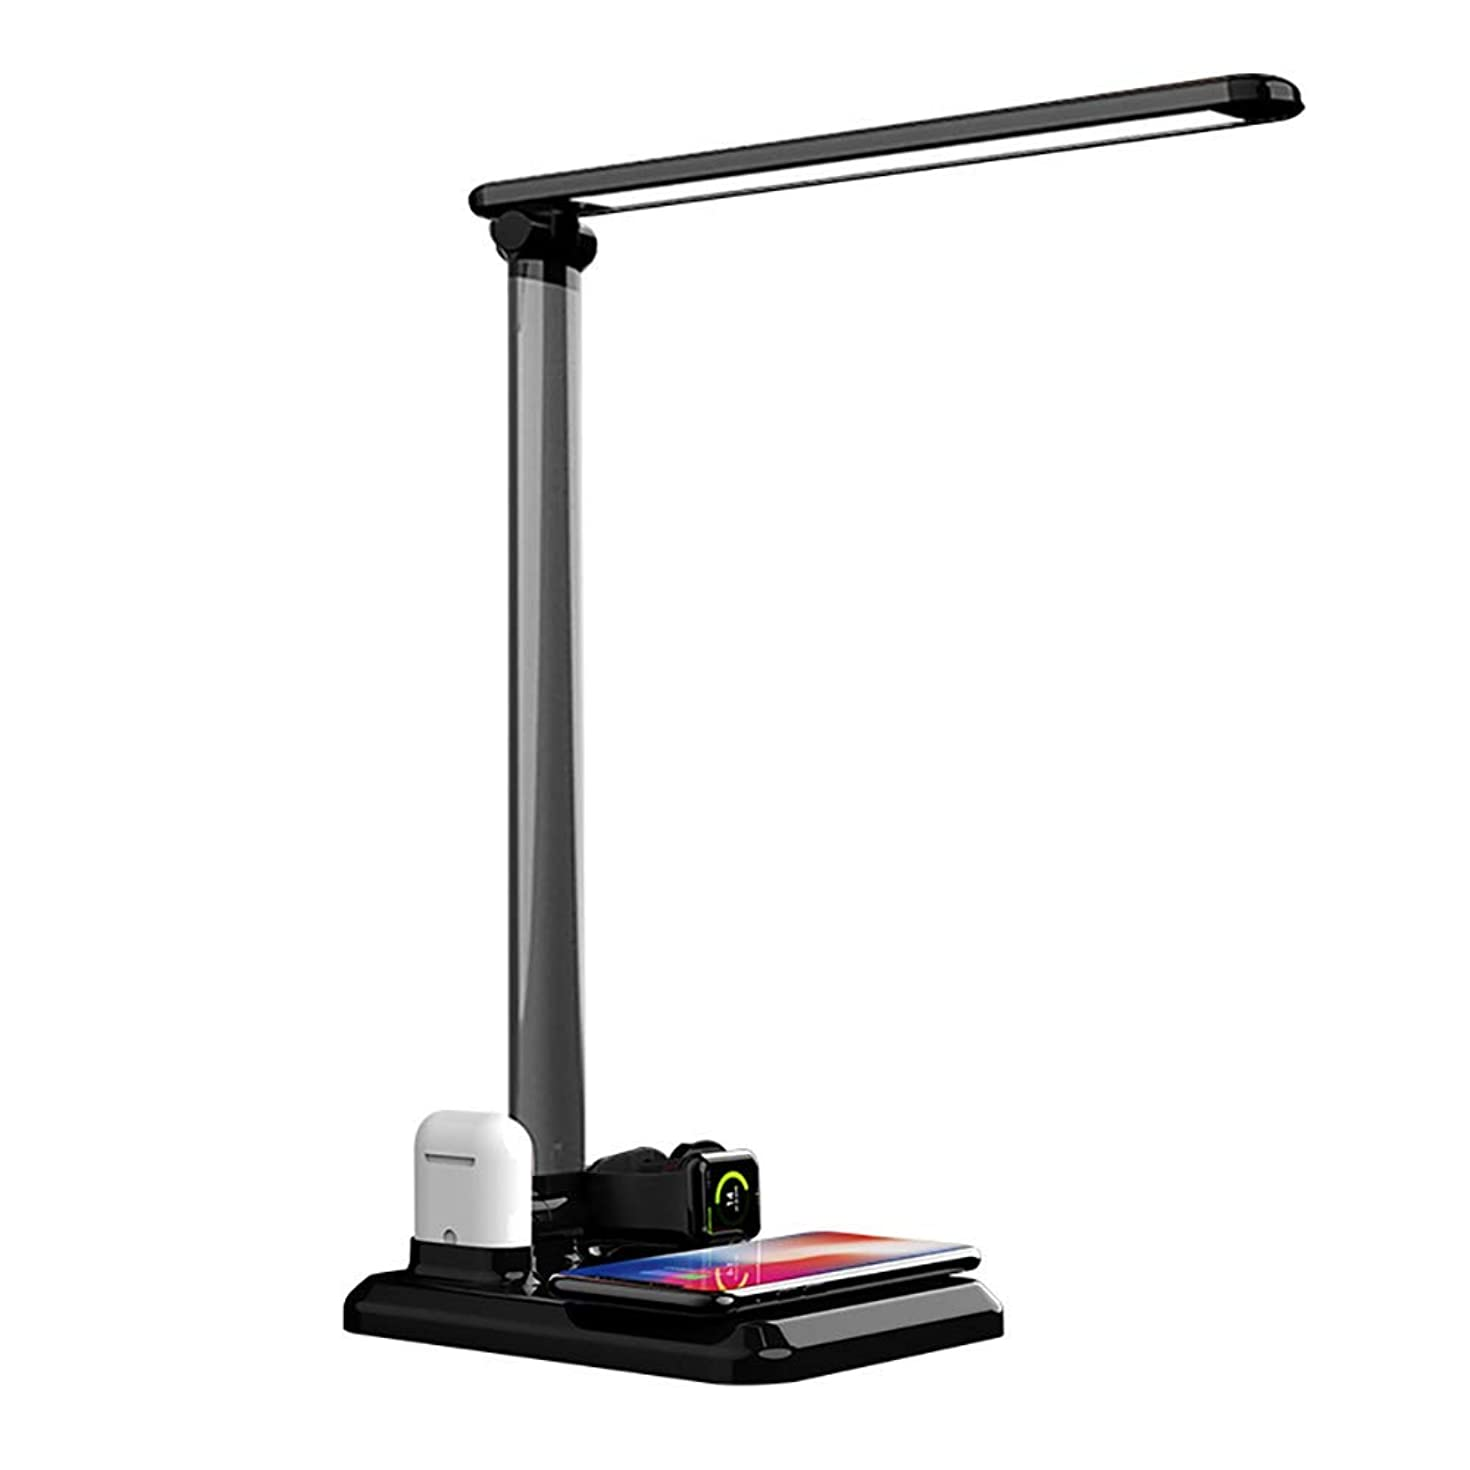 EEkiiqi Mulfunction LED Desk Lamp Table Lamps with Wireless Charger Fast Charging for Phone XS Max/Apple Watch/Airpods for Officer/Worker,Touch Control,Dimmable,Adjustable (Black)